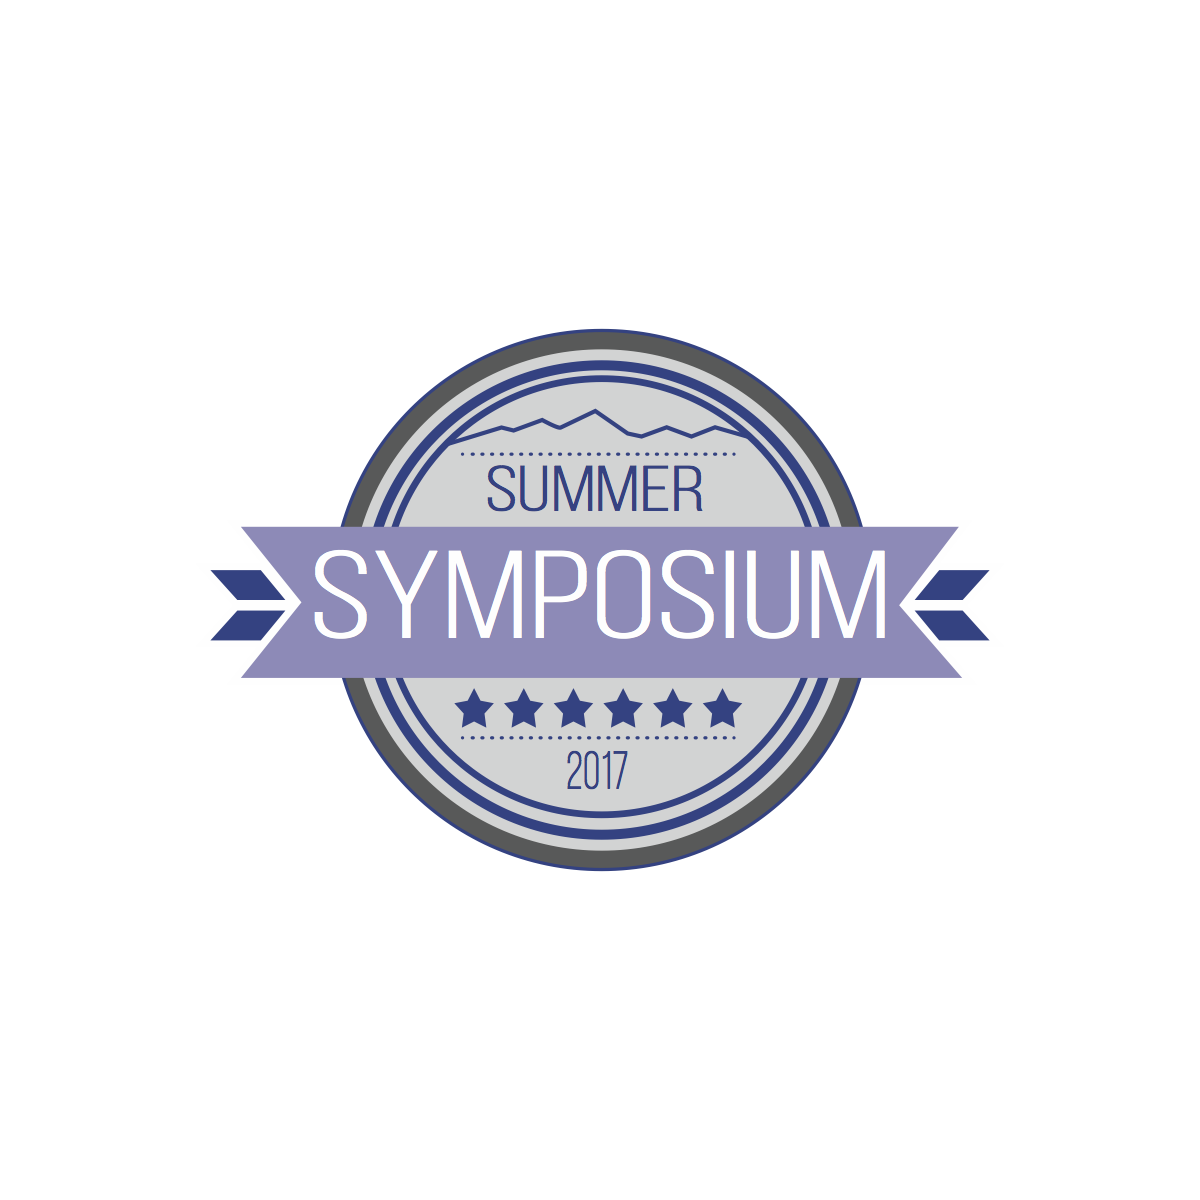 Summer Symposium 2017 Logo